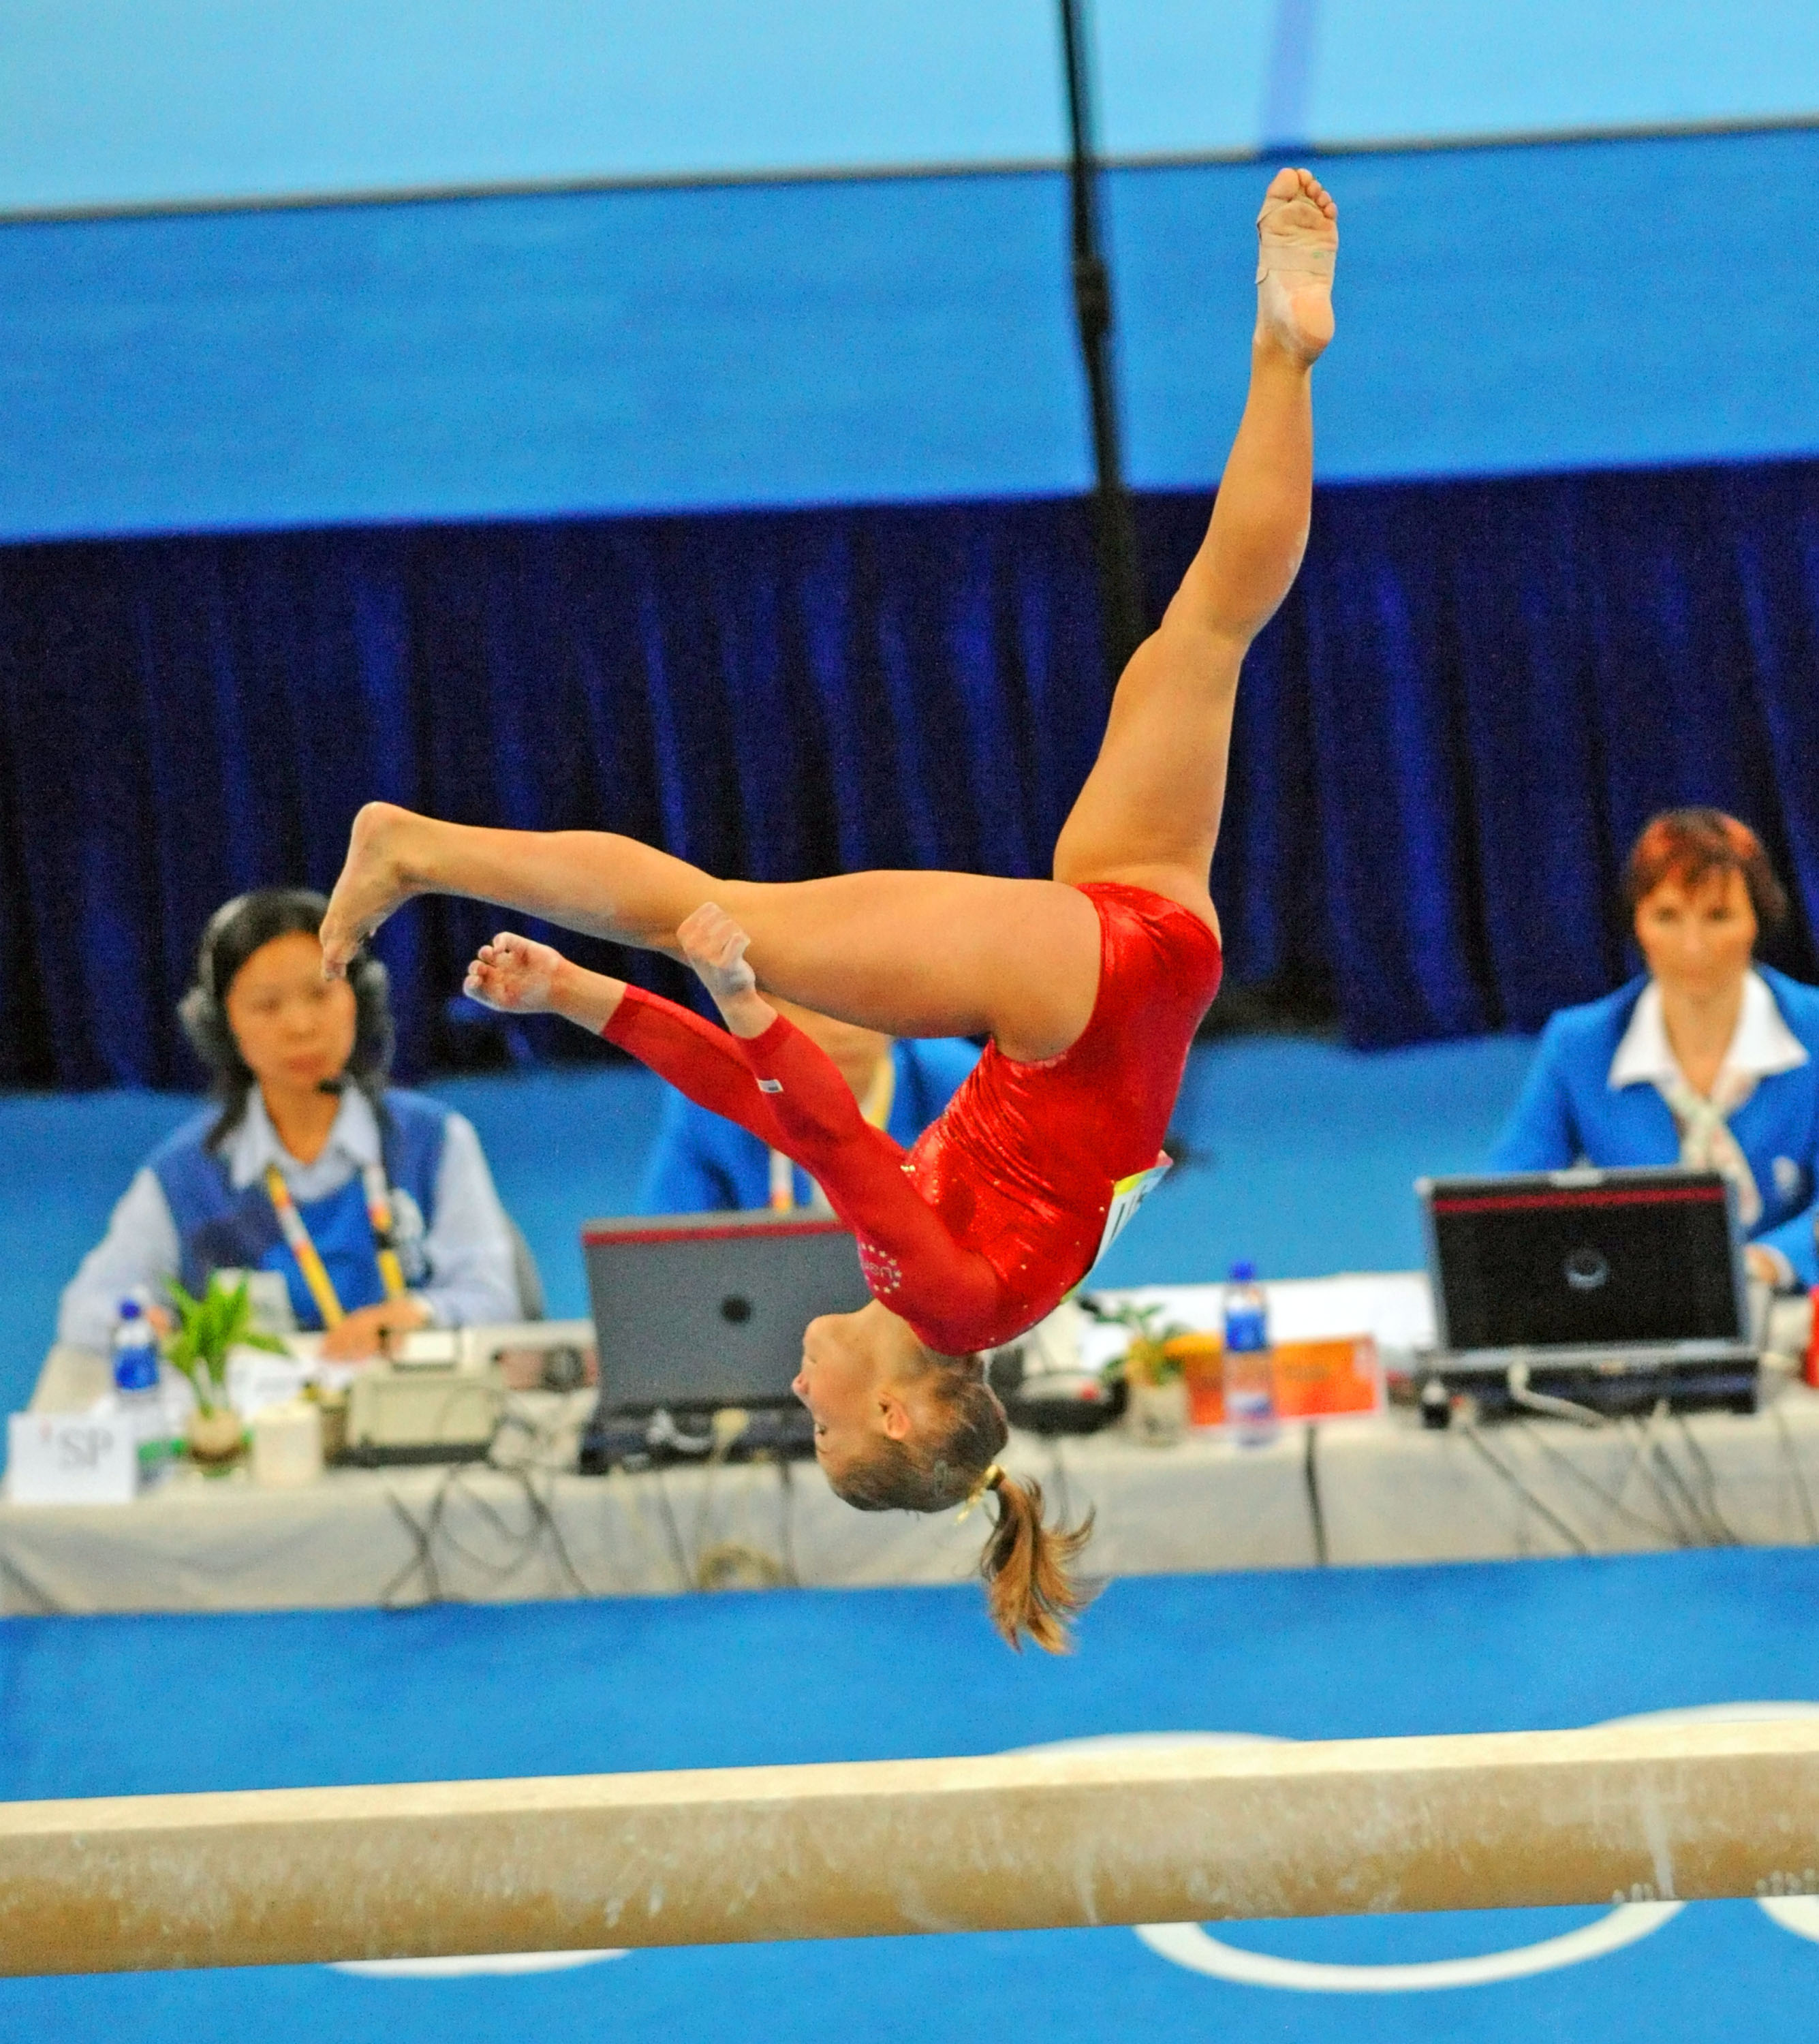 Usa Gymnast Shawn Johnson Does A Somersault On The Balance